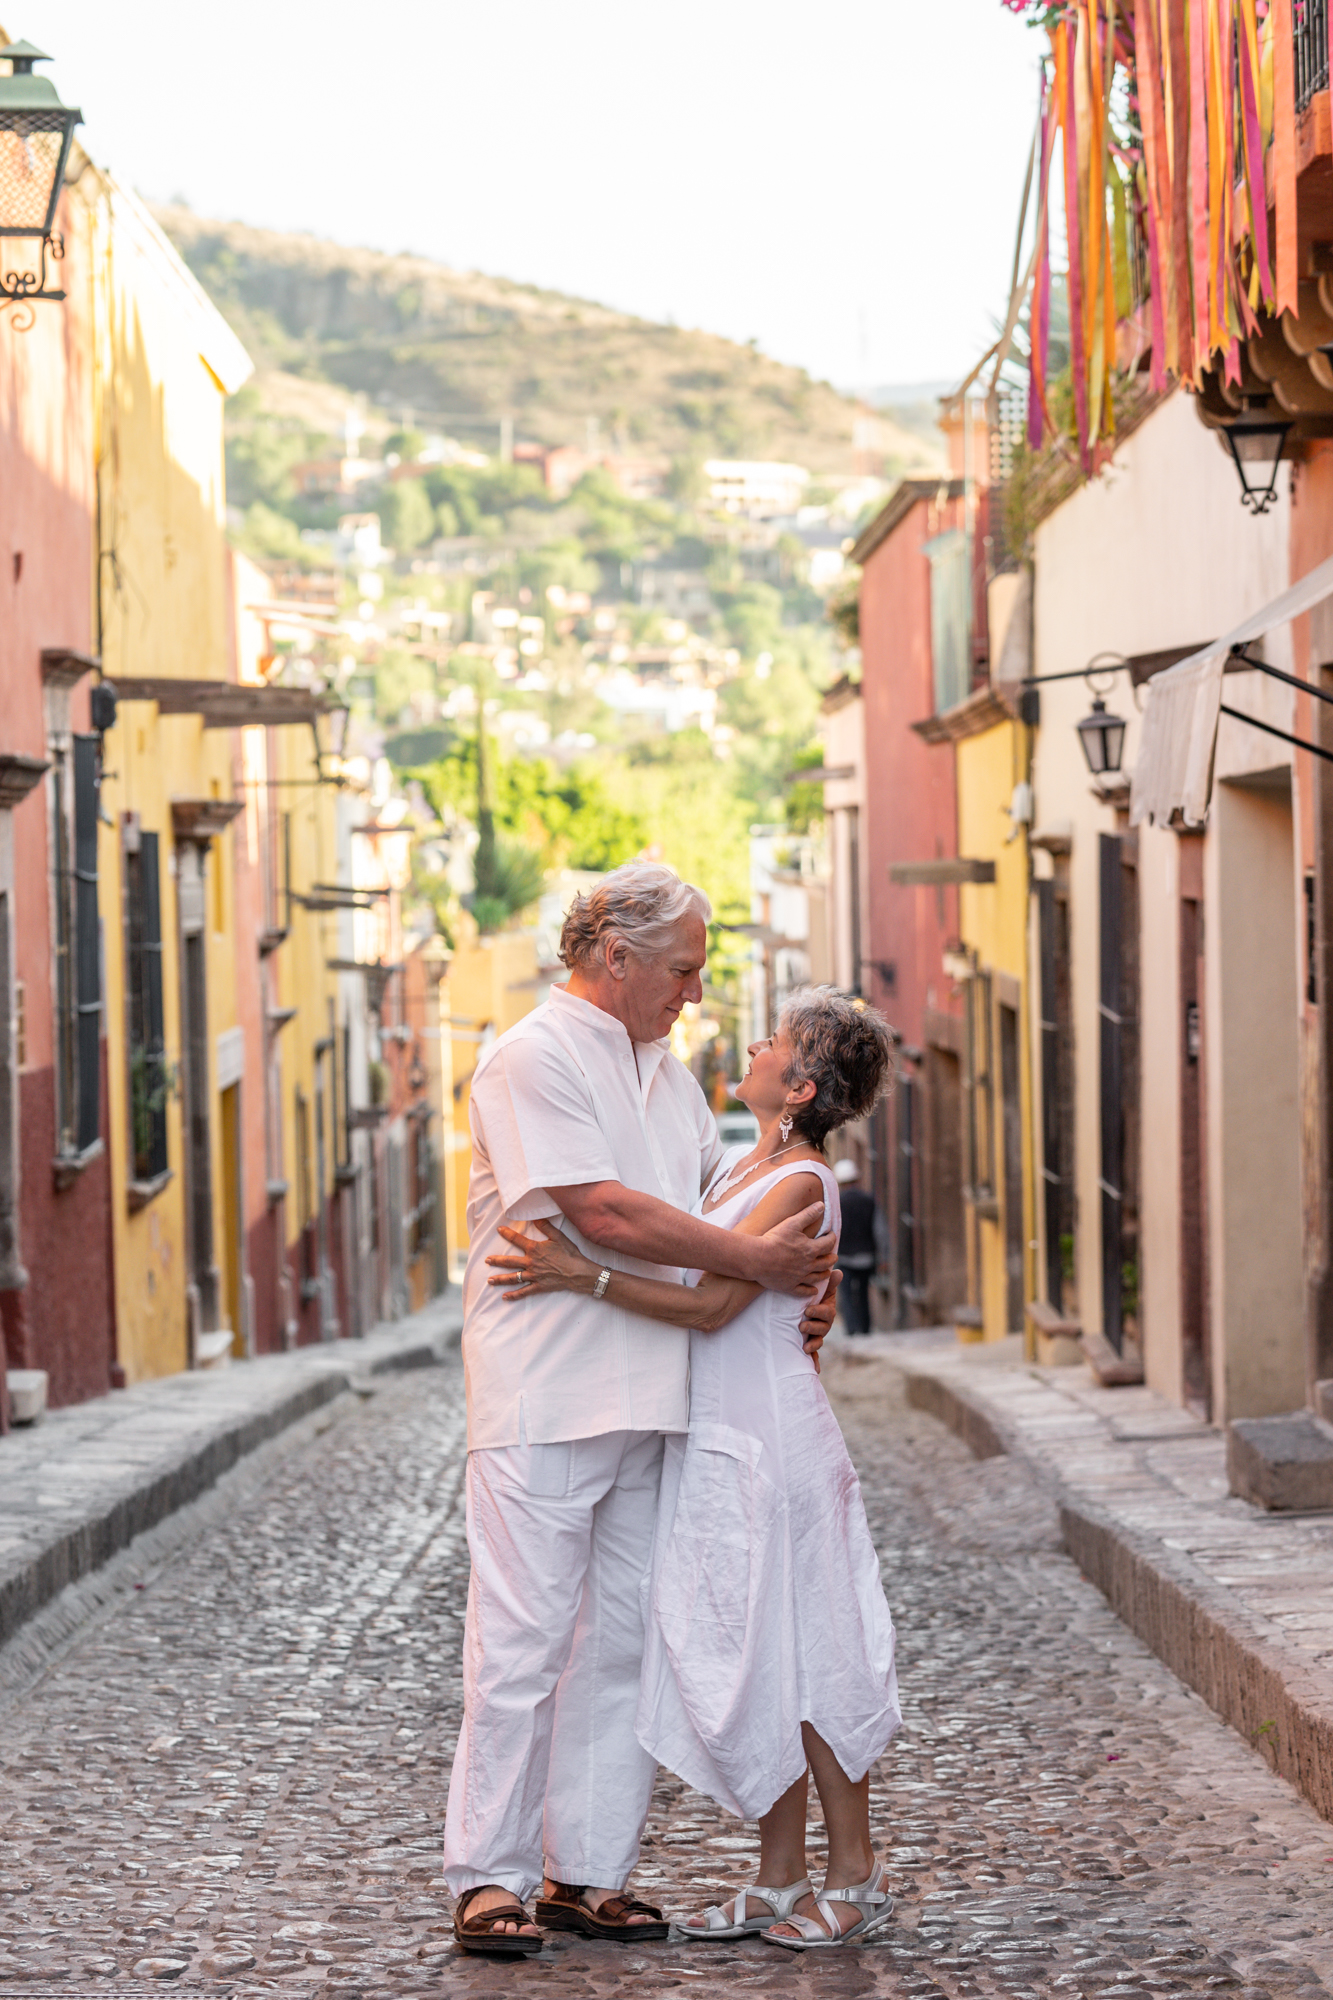 Photoshoot session in San Miguel de Allende with Suzanne and Leo-45.jpg